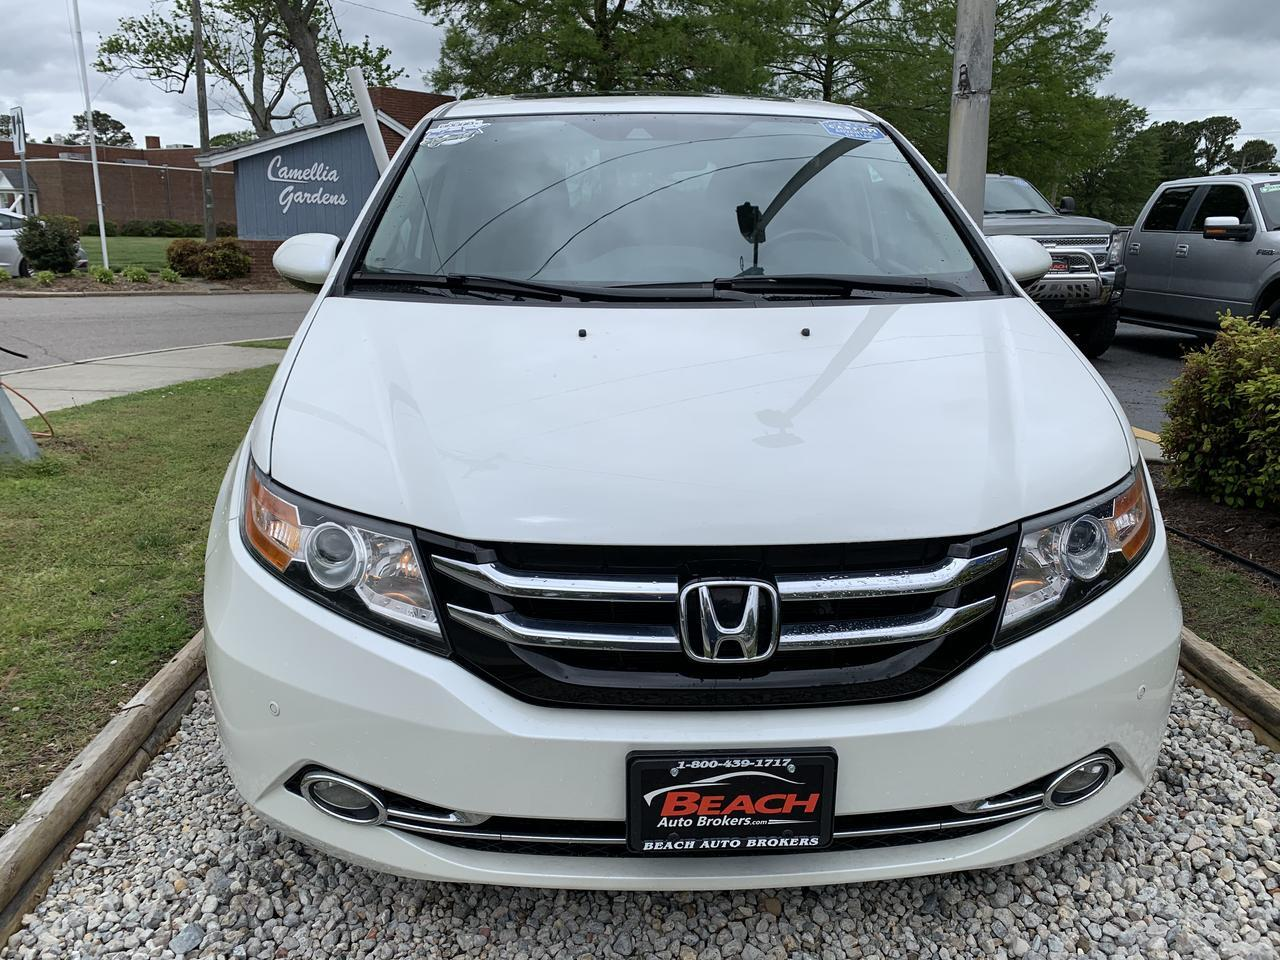 2014 HONDA ODYSSEY TOURING ELITE, WARRANTY, LEATHER, SUNROOF, NAV, DVD PLAYER, HEATED SEATS, BLUETOOTH, 1 OWNER! Norfolk VA